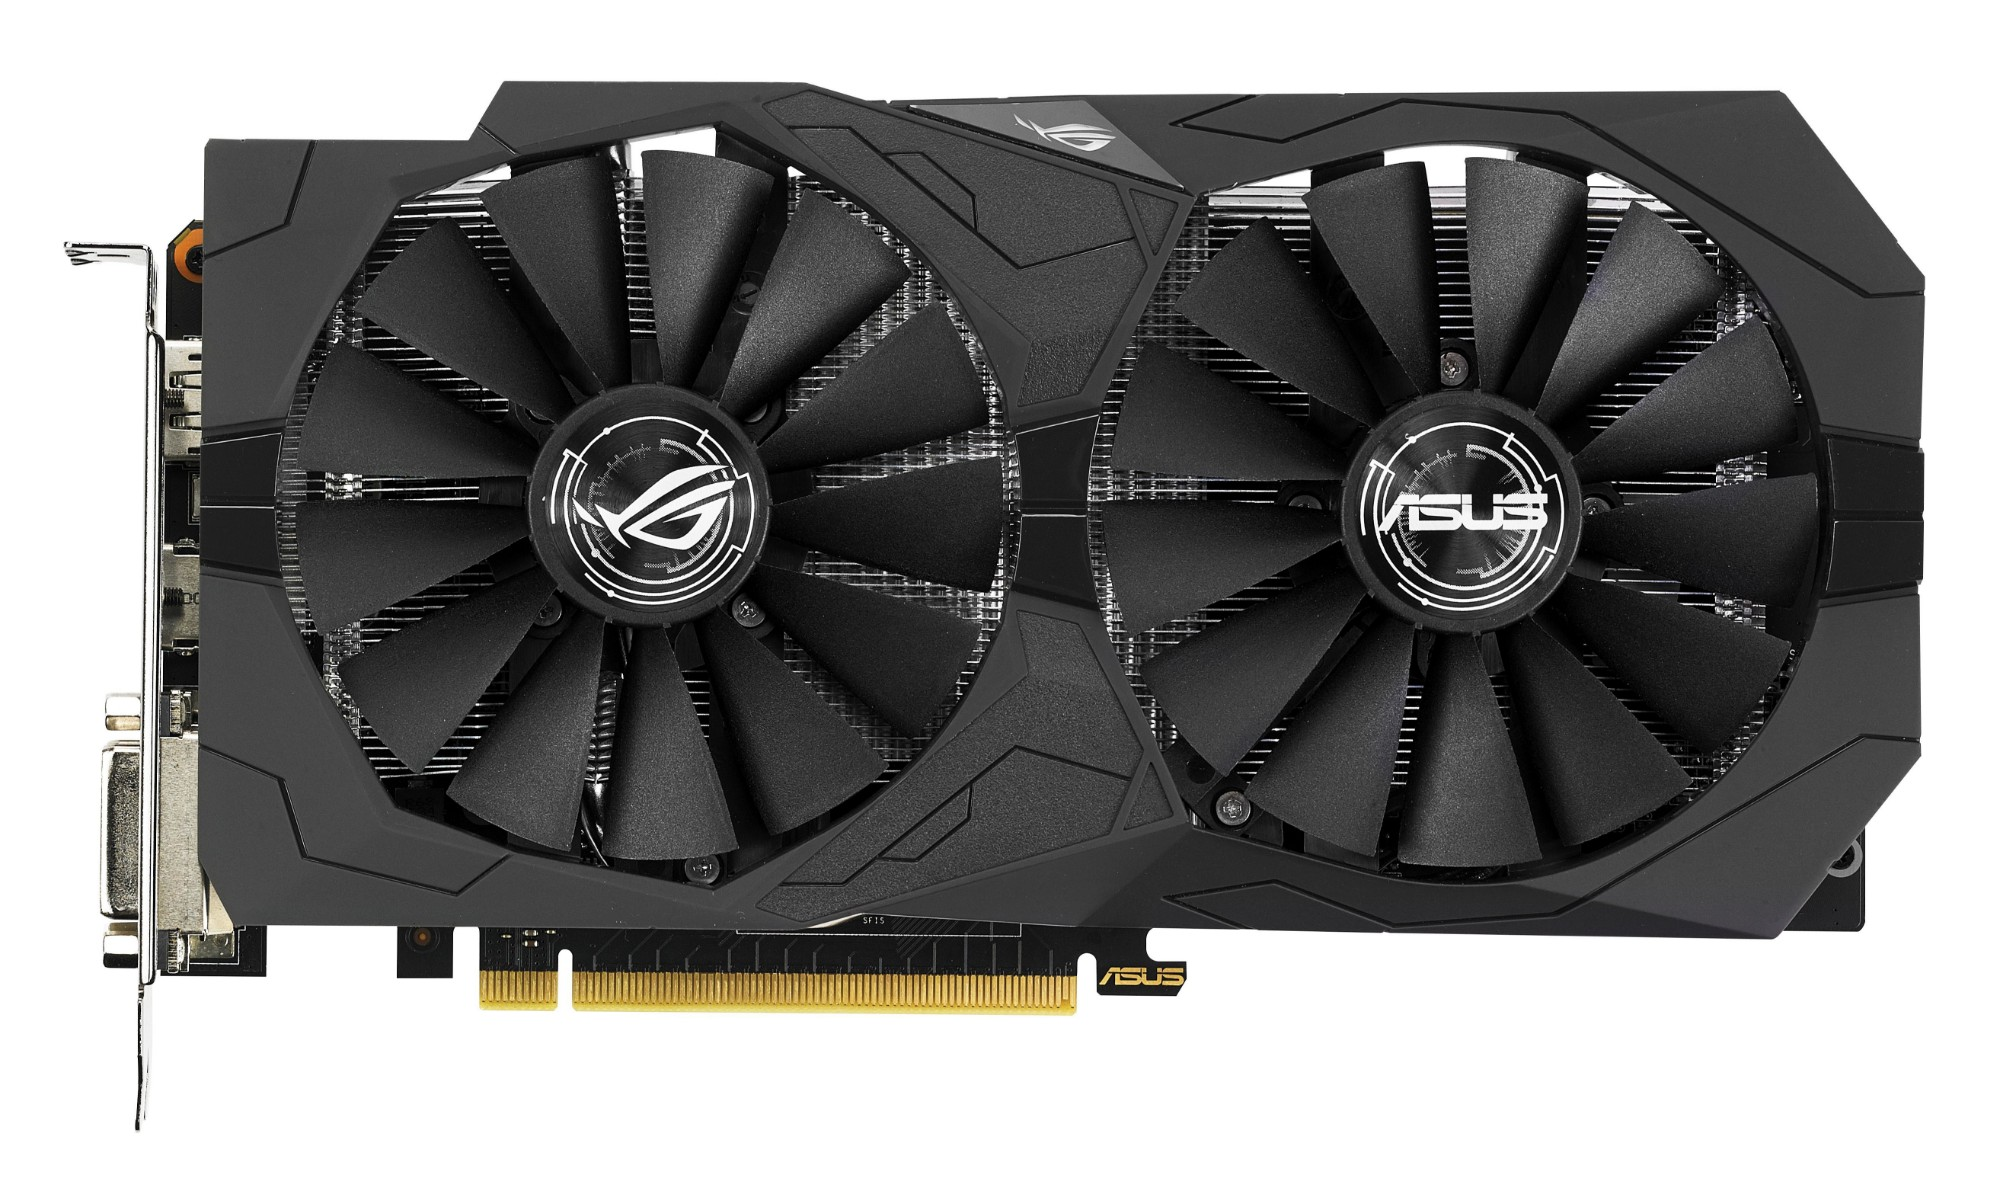 ASUS STRIX-GTX1050-2G-GAMING GeForce GTX 1050 2GB graphics card